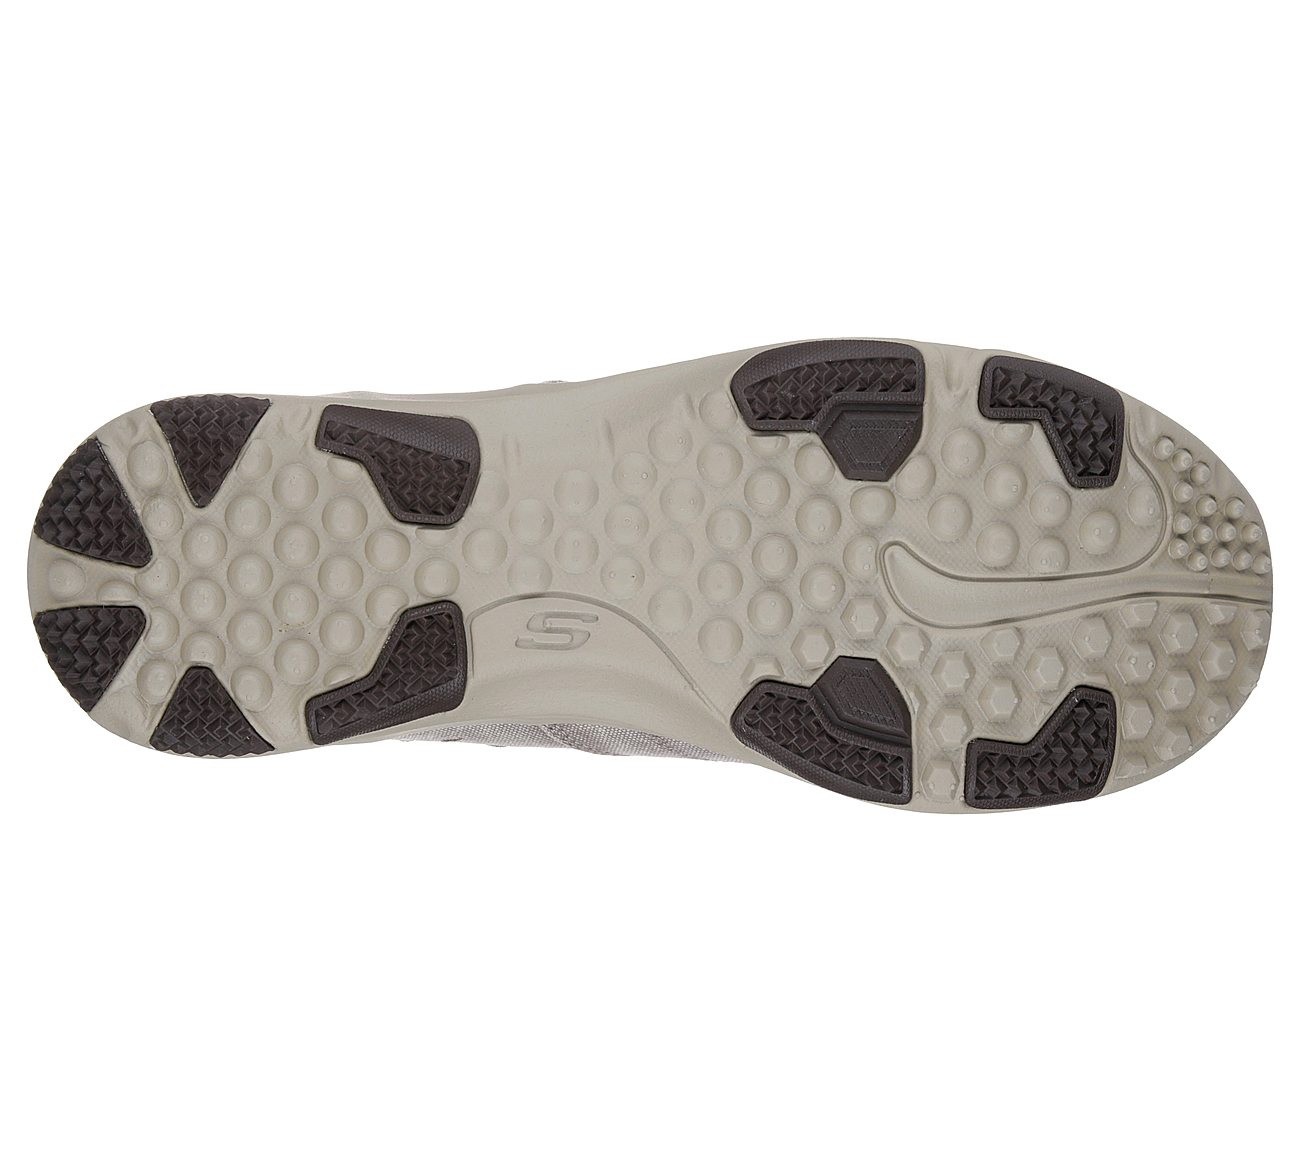 Buy SKECHERS Larson - Bolten USA Casuals Shoes only  69.00 8bdad6b198a